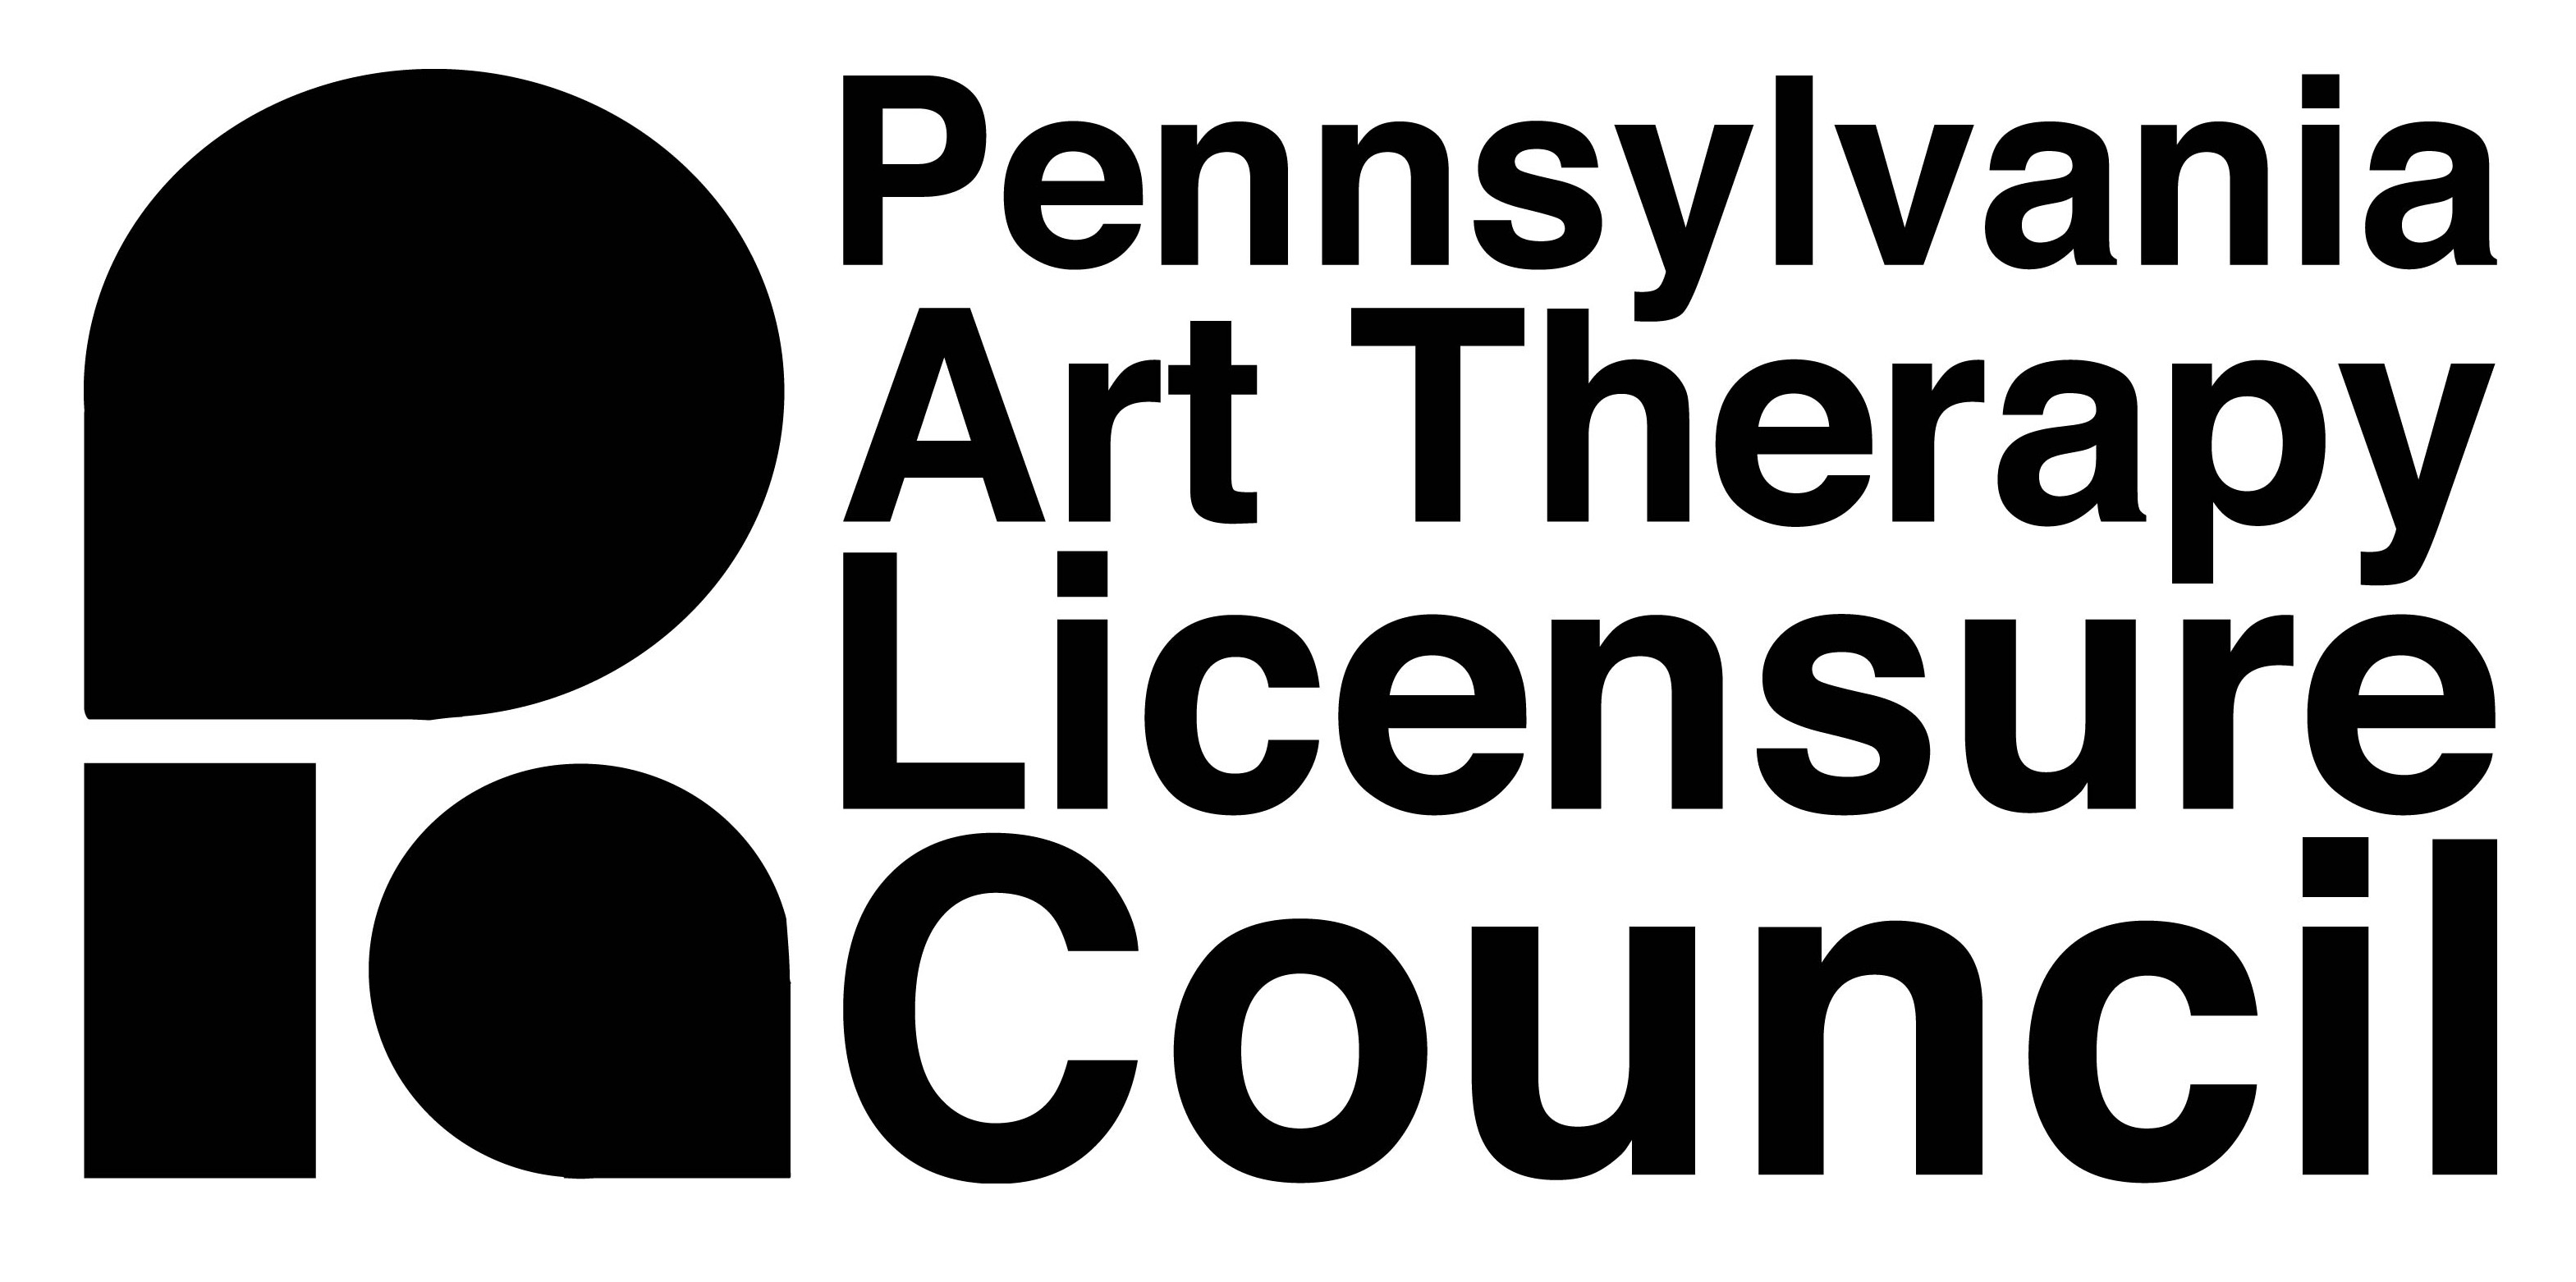 Pennsylvania Art Therapy Licensure Council Logo